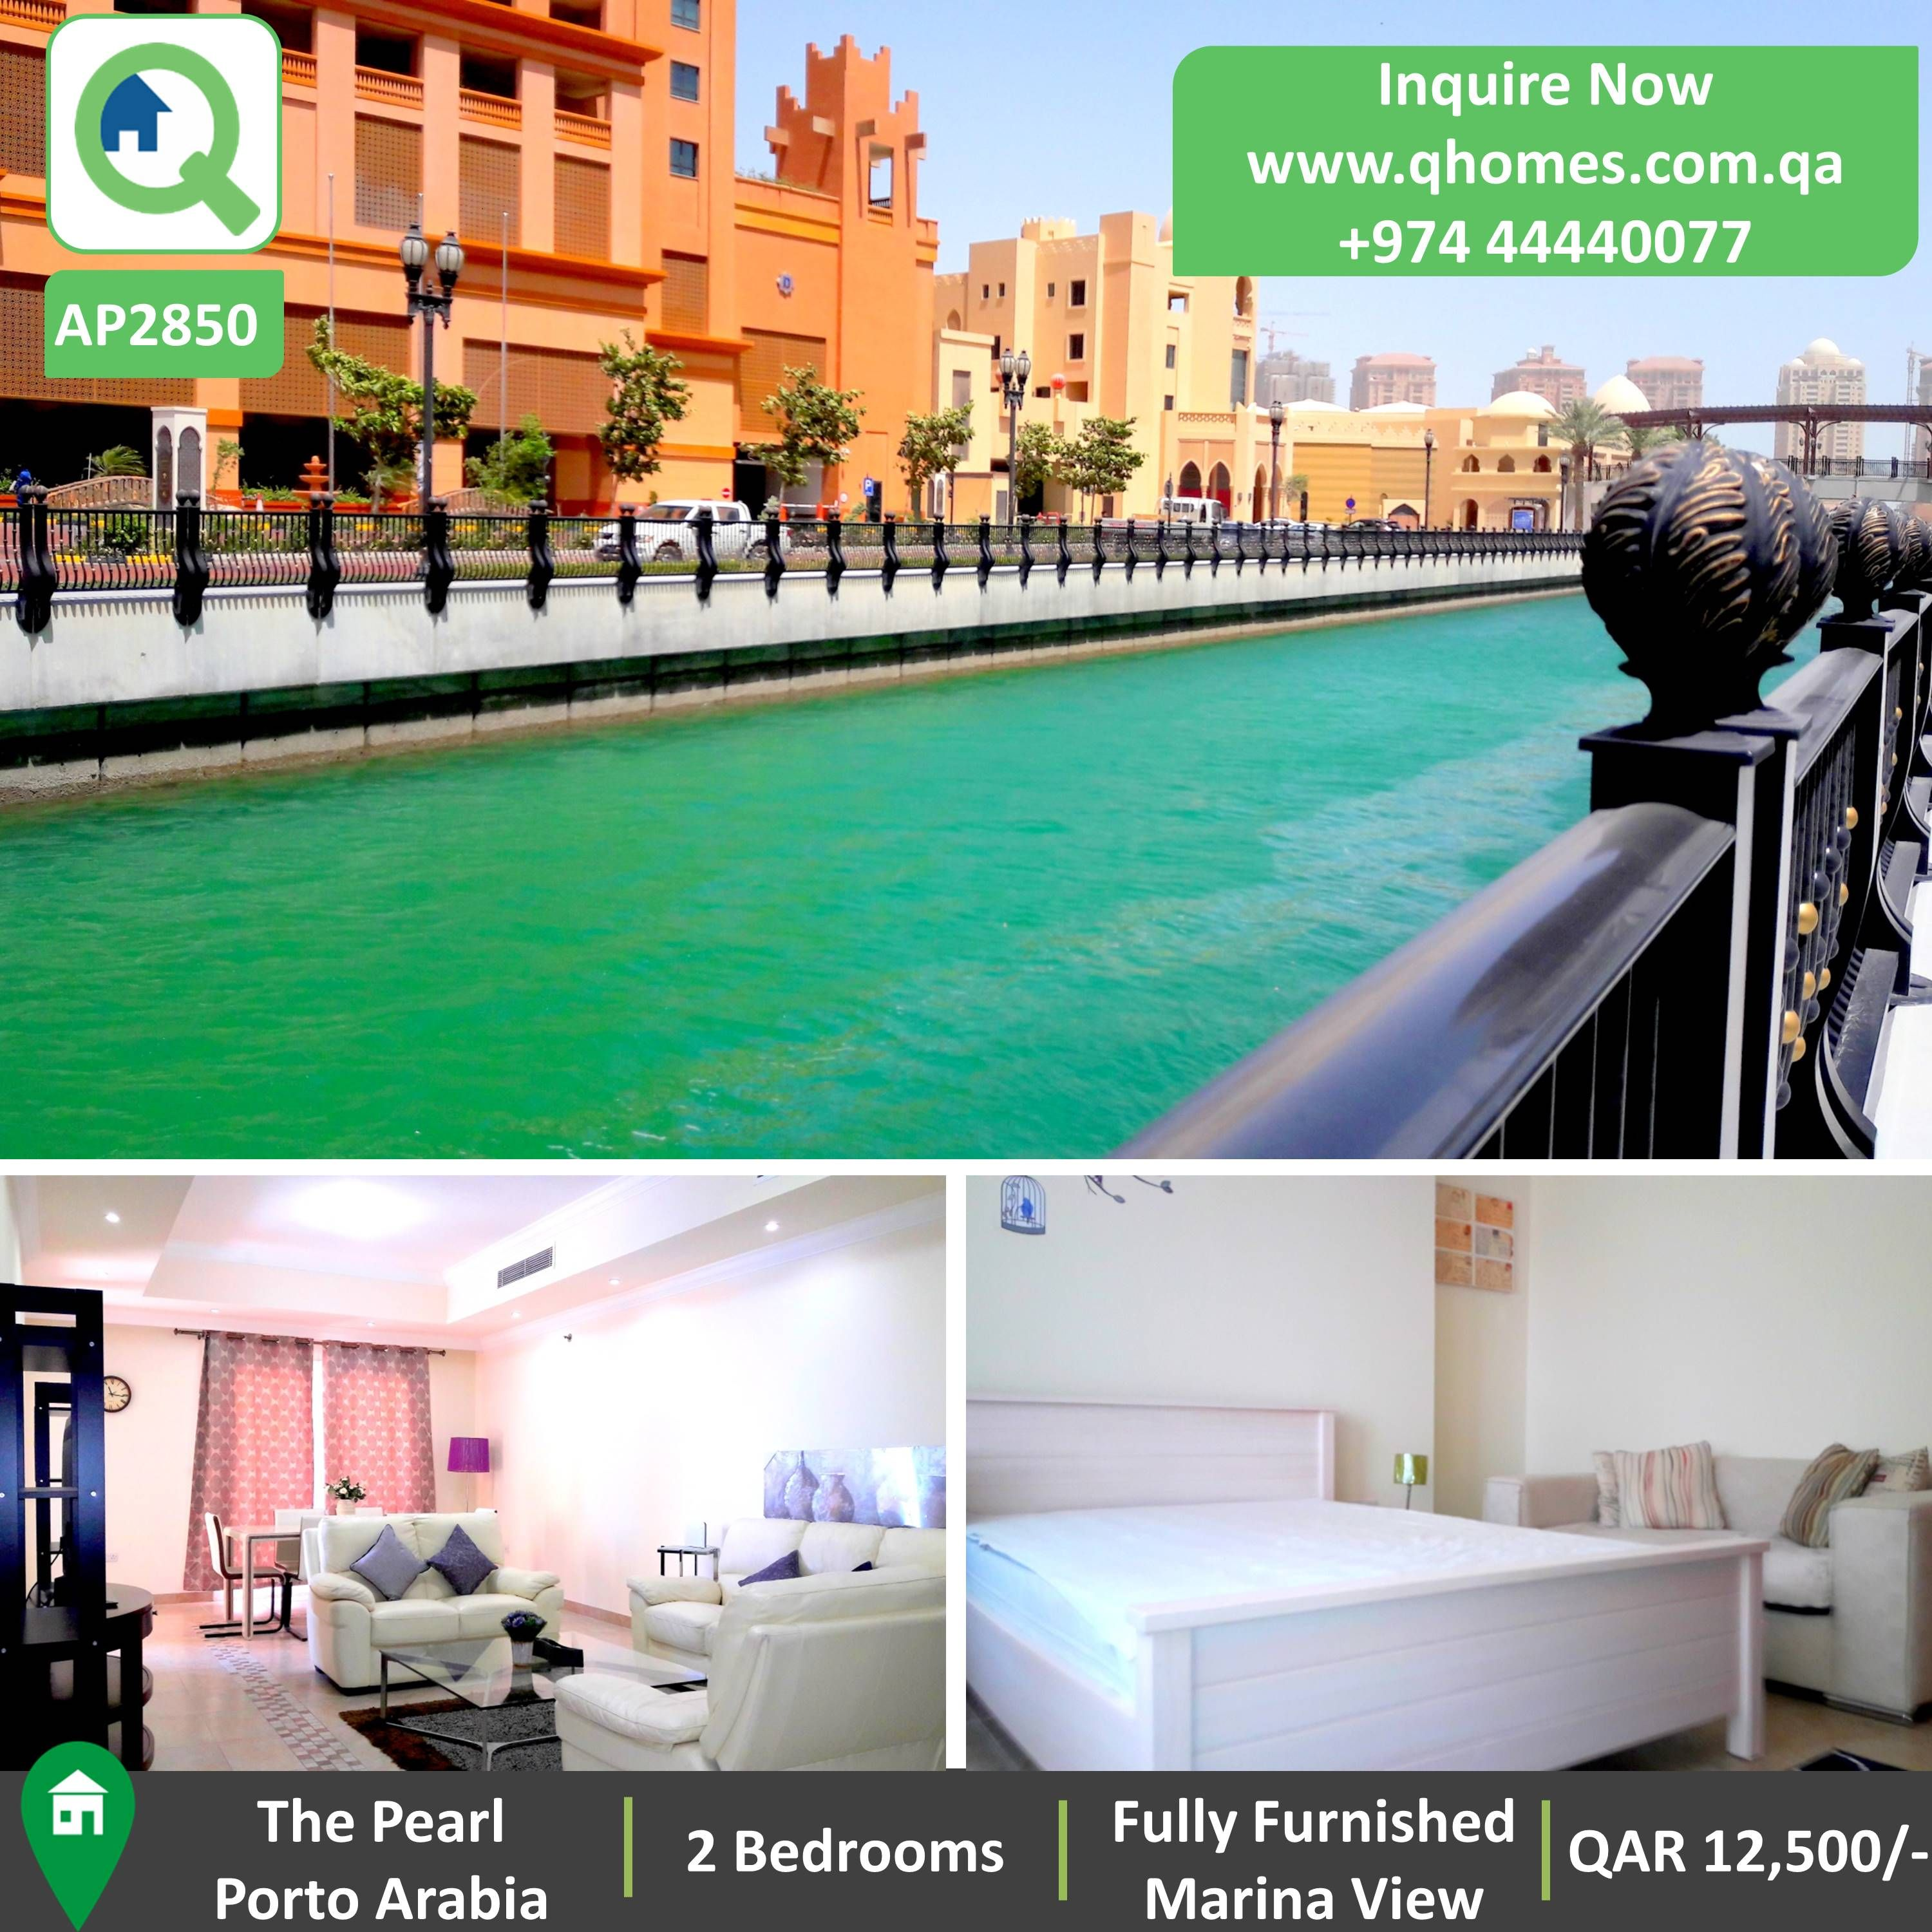 Apartment For Rent In Pearl Qatar Semi Furnished 2 Bedrooms Porto Arabia At Qar 12 500